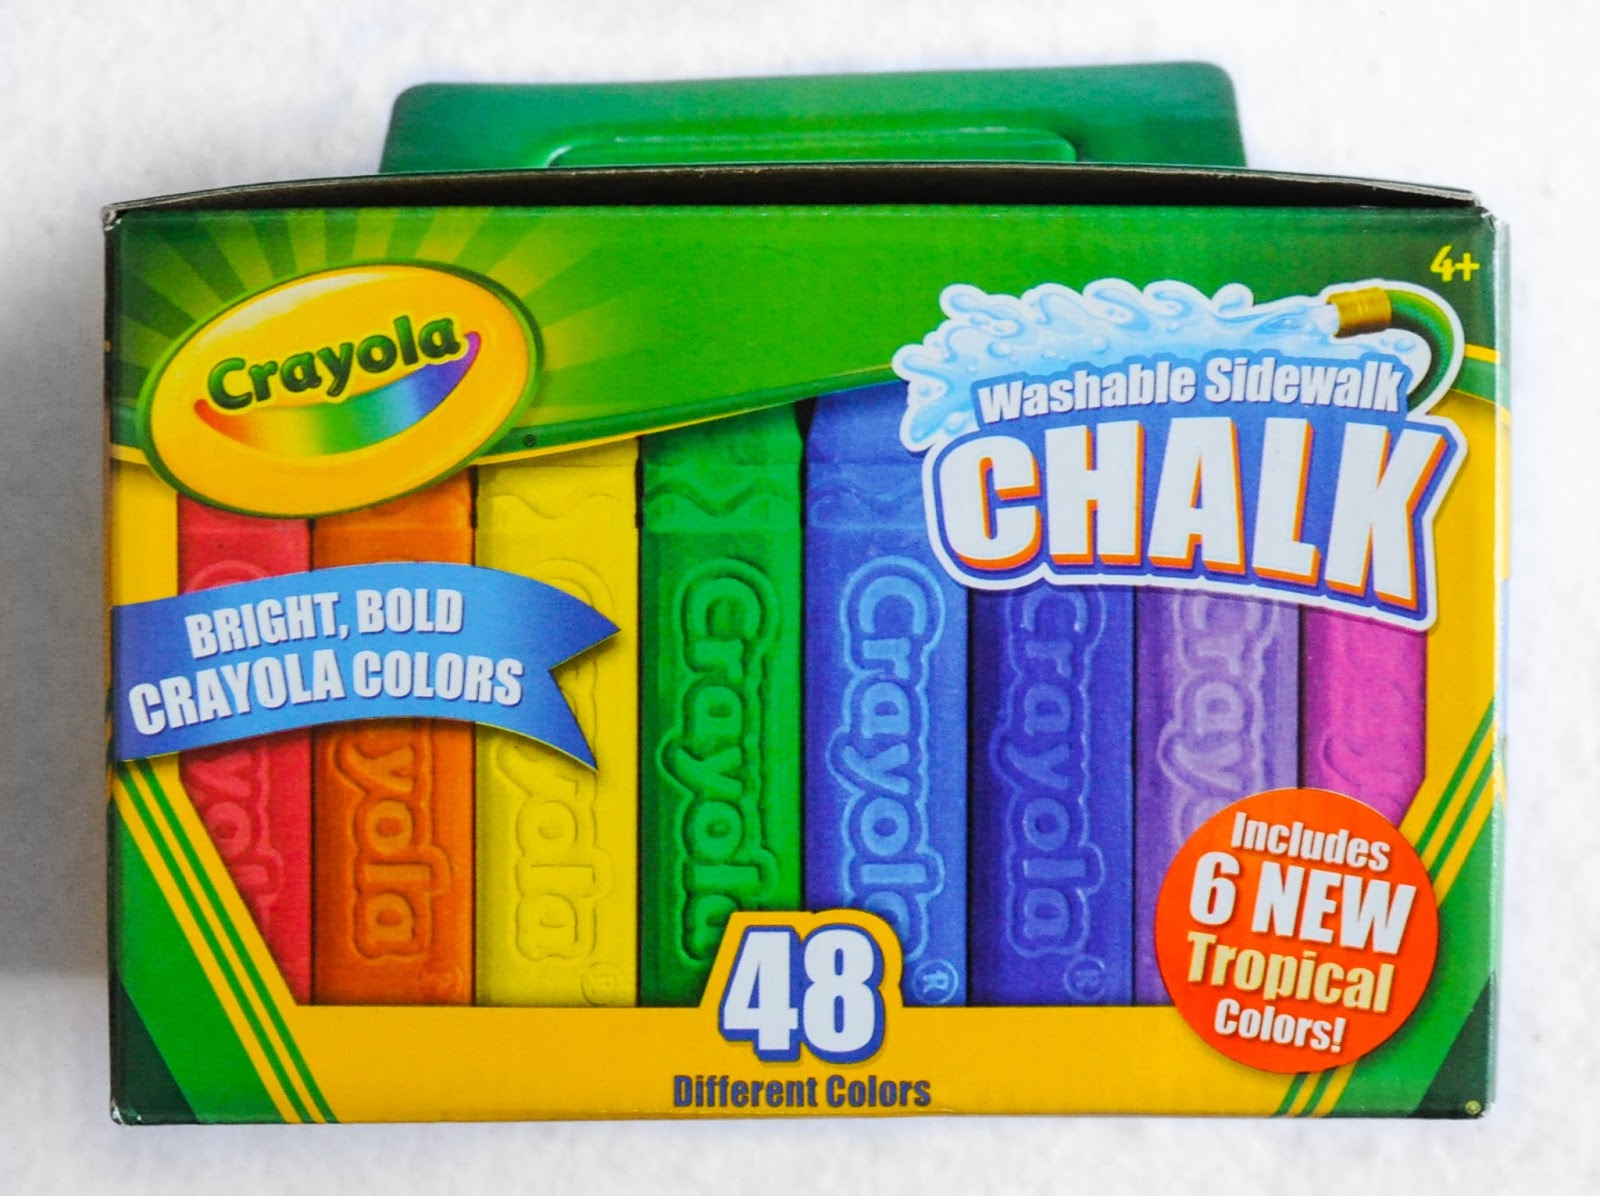 48 Count Crayola Washable Sidewalk Chalk: What\'s Inside the Box ...